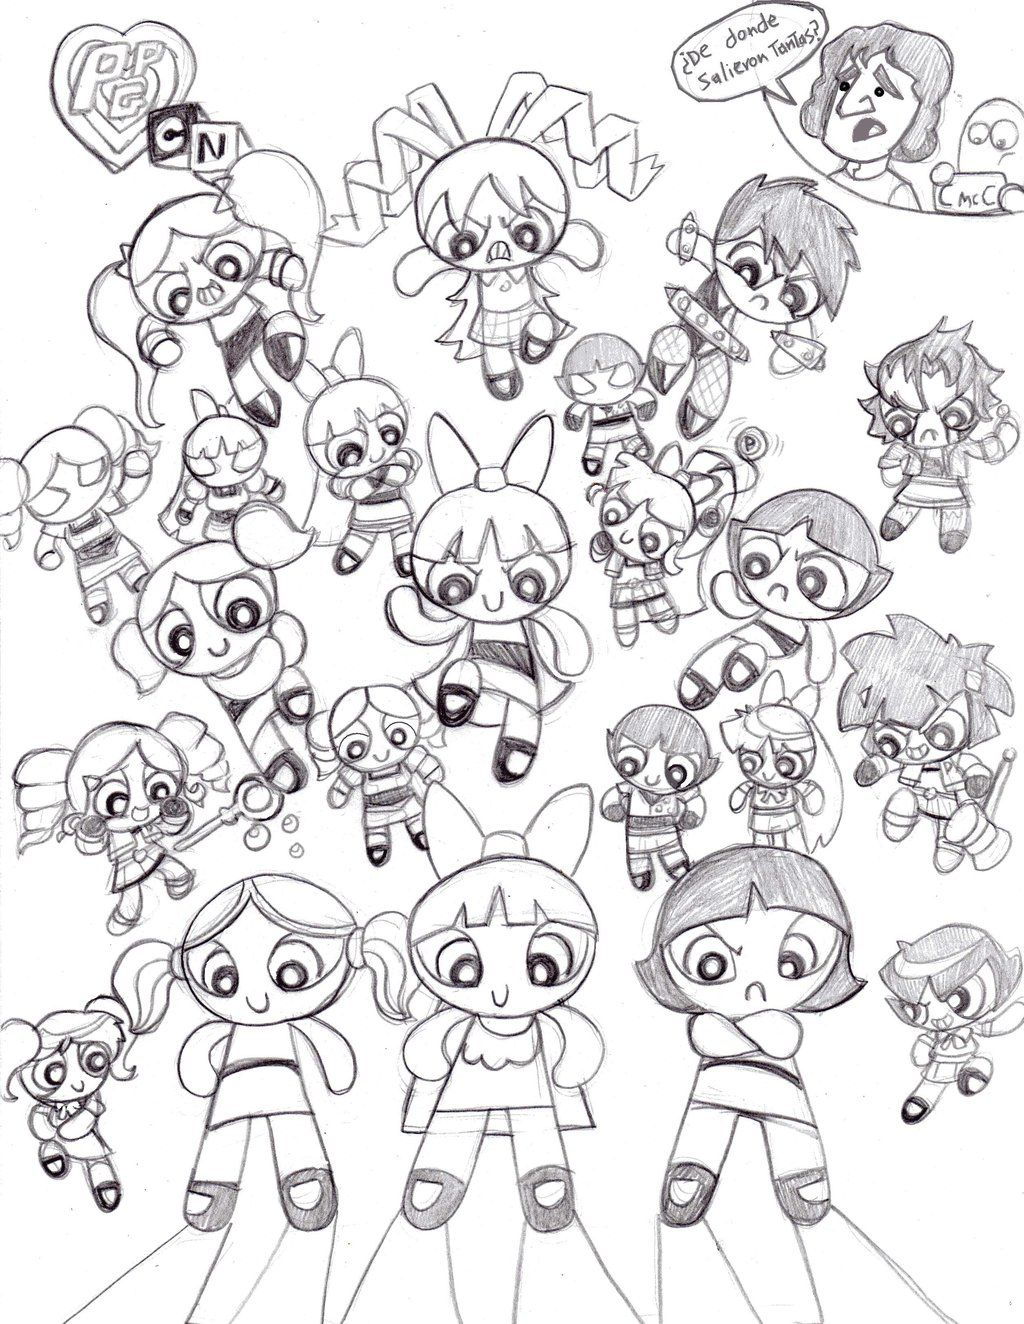 Adult Cute Powerpuff Girls Z Coloring Pages Images cute power puff girls z coloring pages az free printable powerpuff for kids images